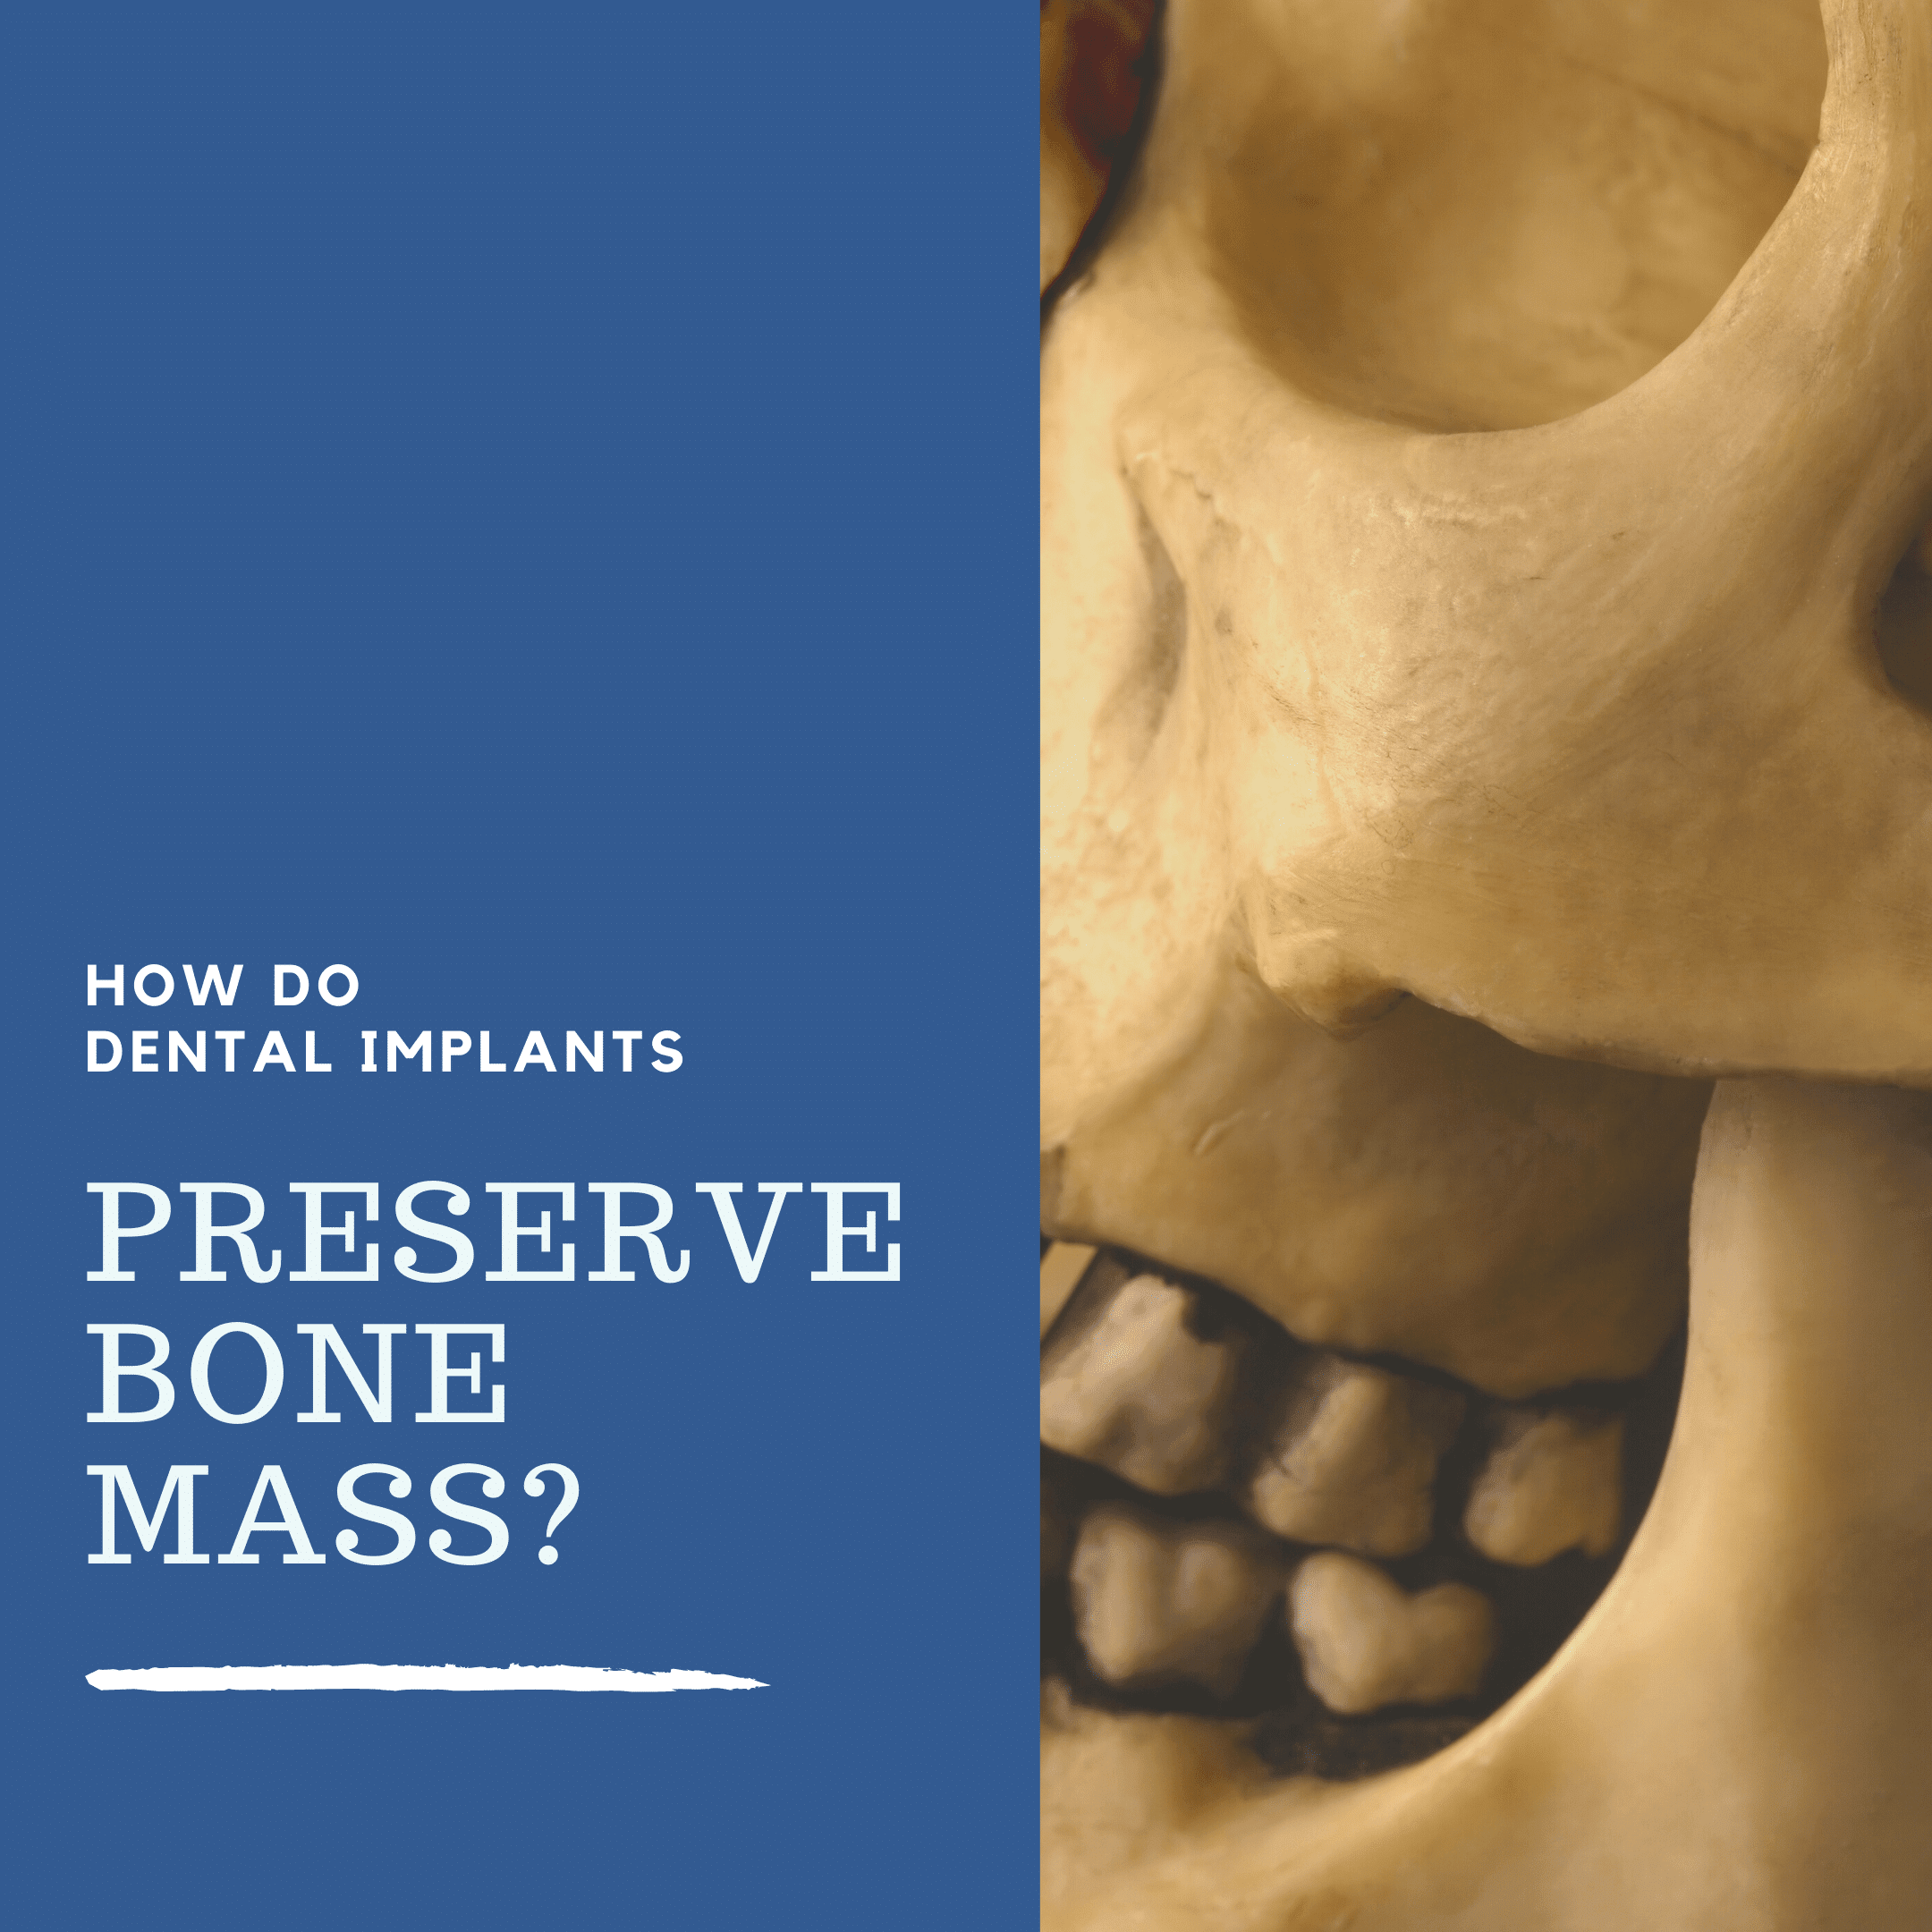 How Do Dental Implants Preserve Bone Mass